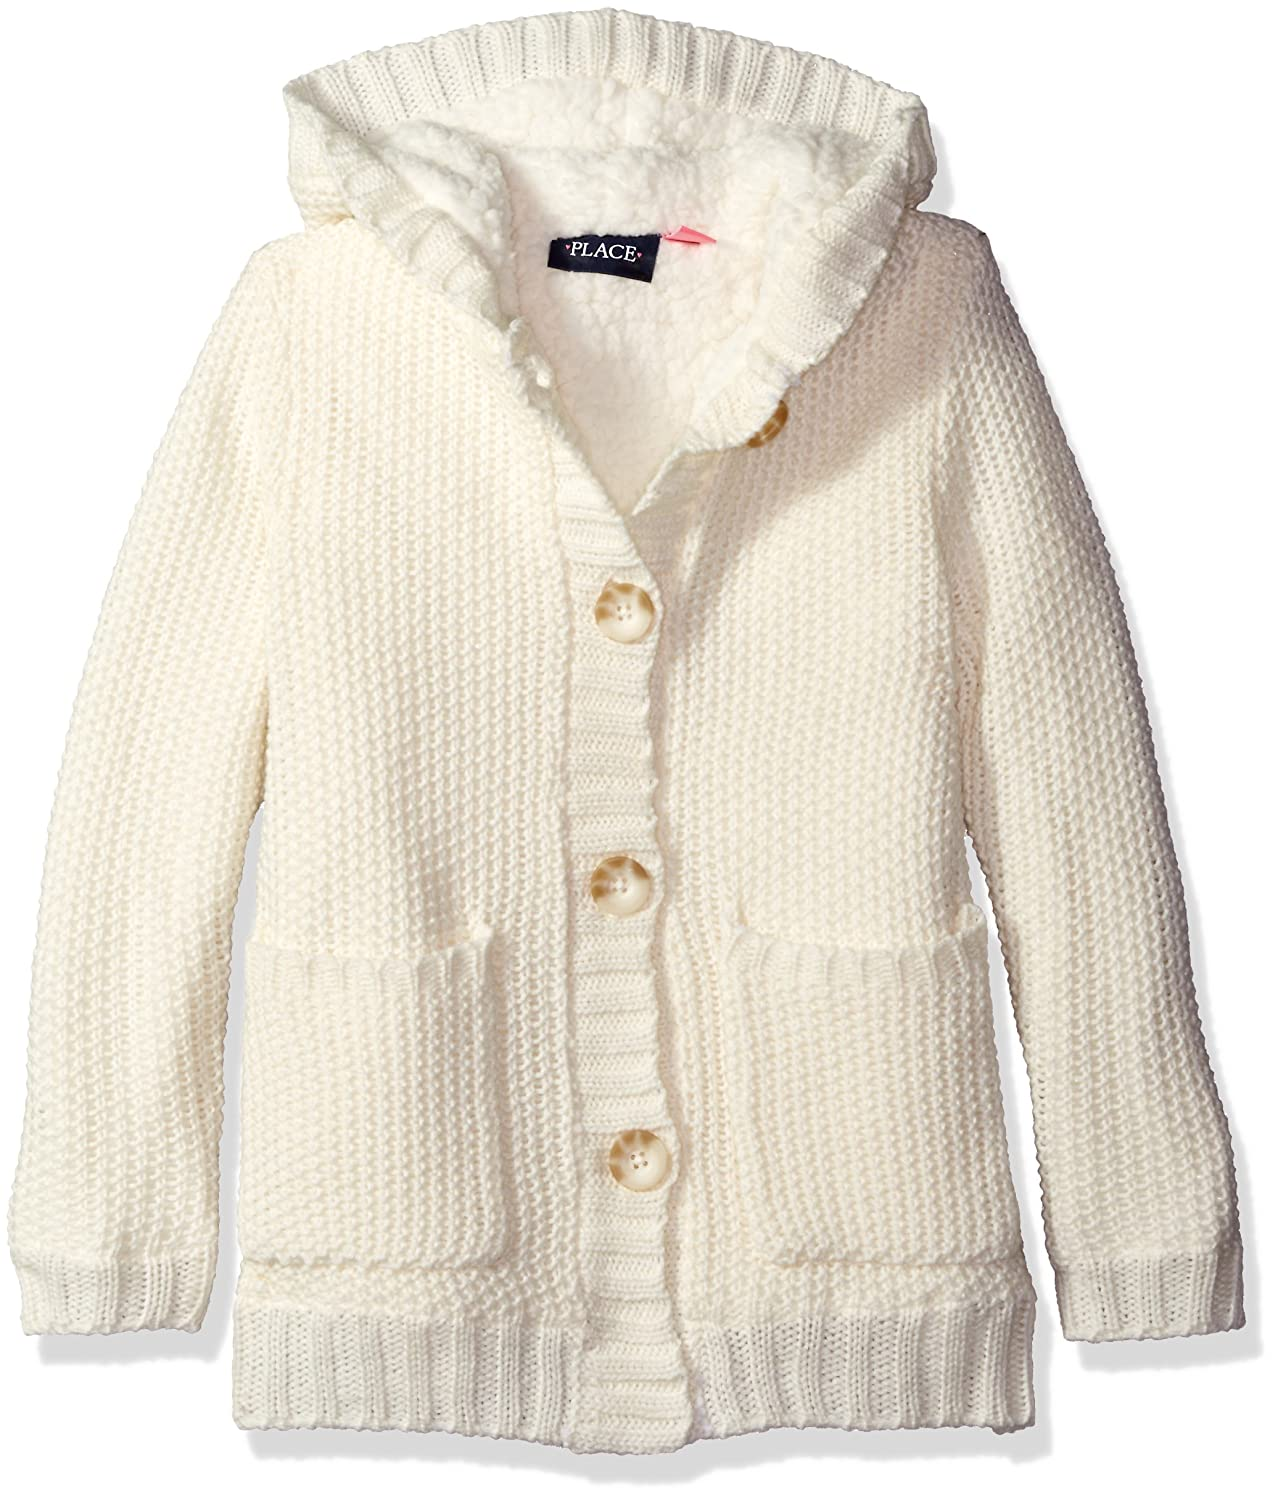 The Children's Place Girls' Knit Jacket 2048045-1